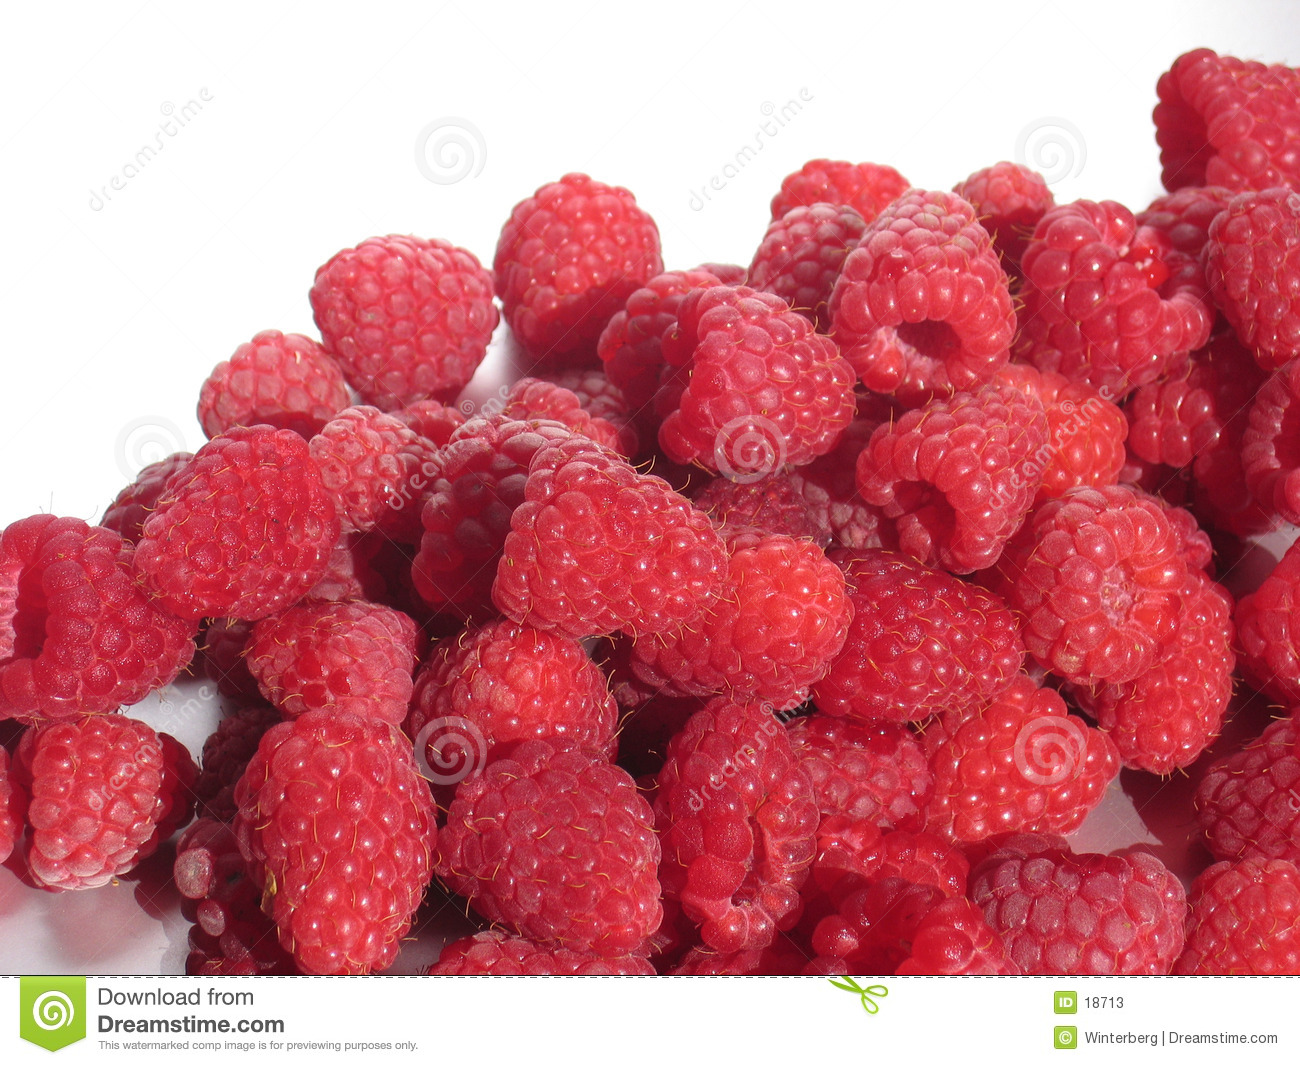 Framboises rouges